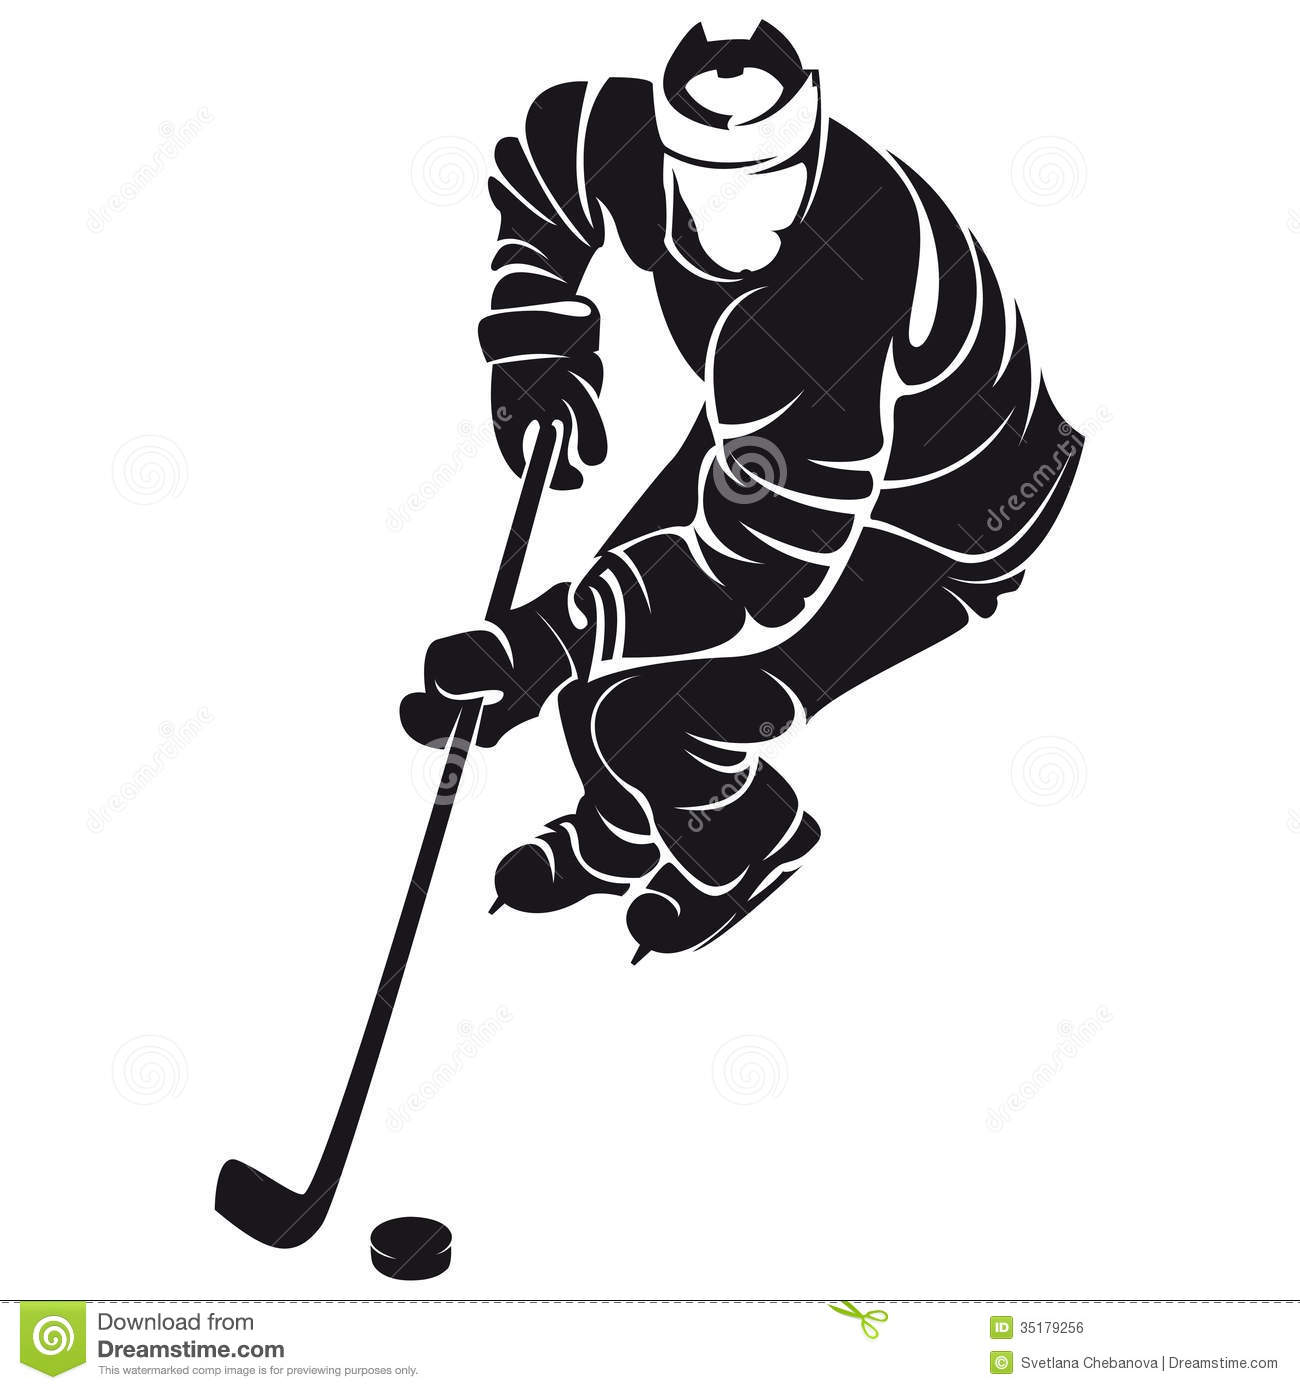 Hockey Player Silhouette Stock Vector Illustration Of